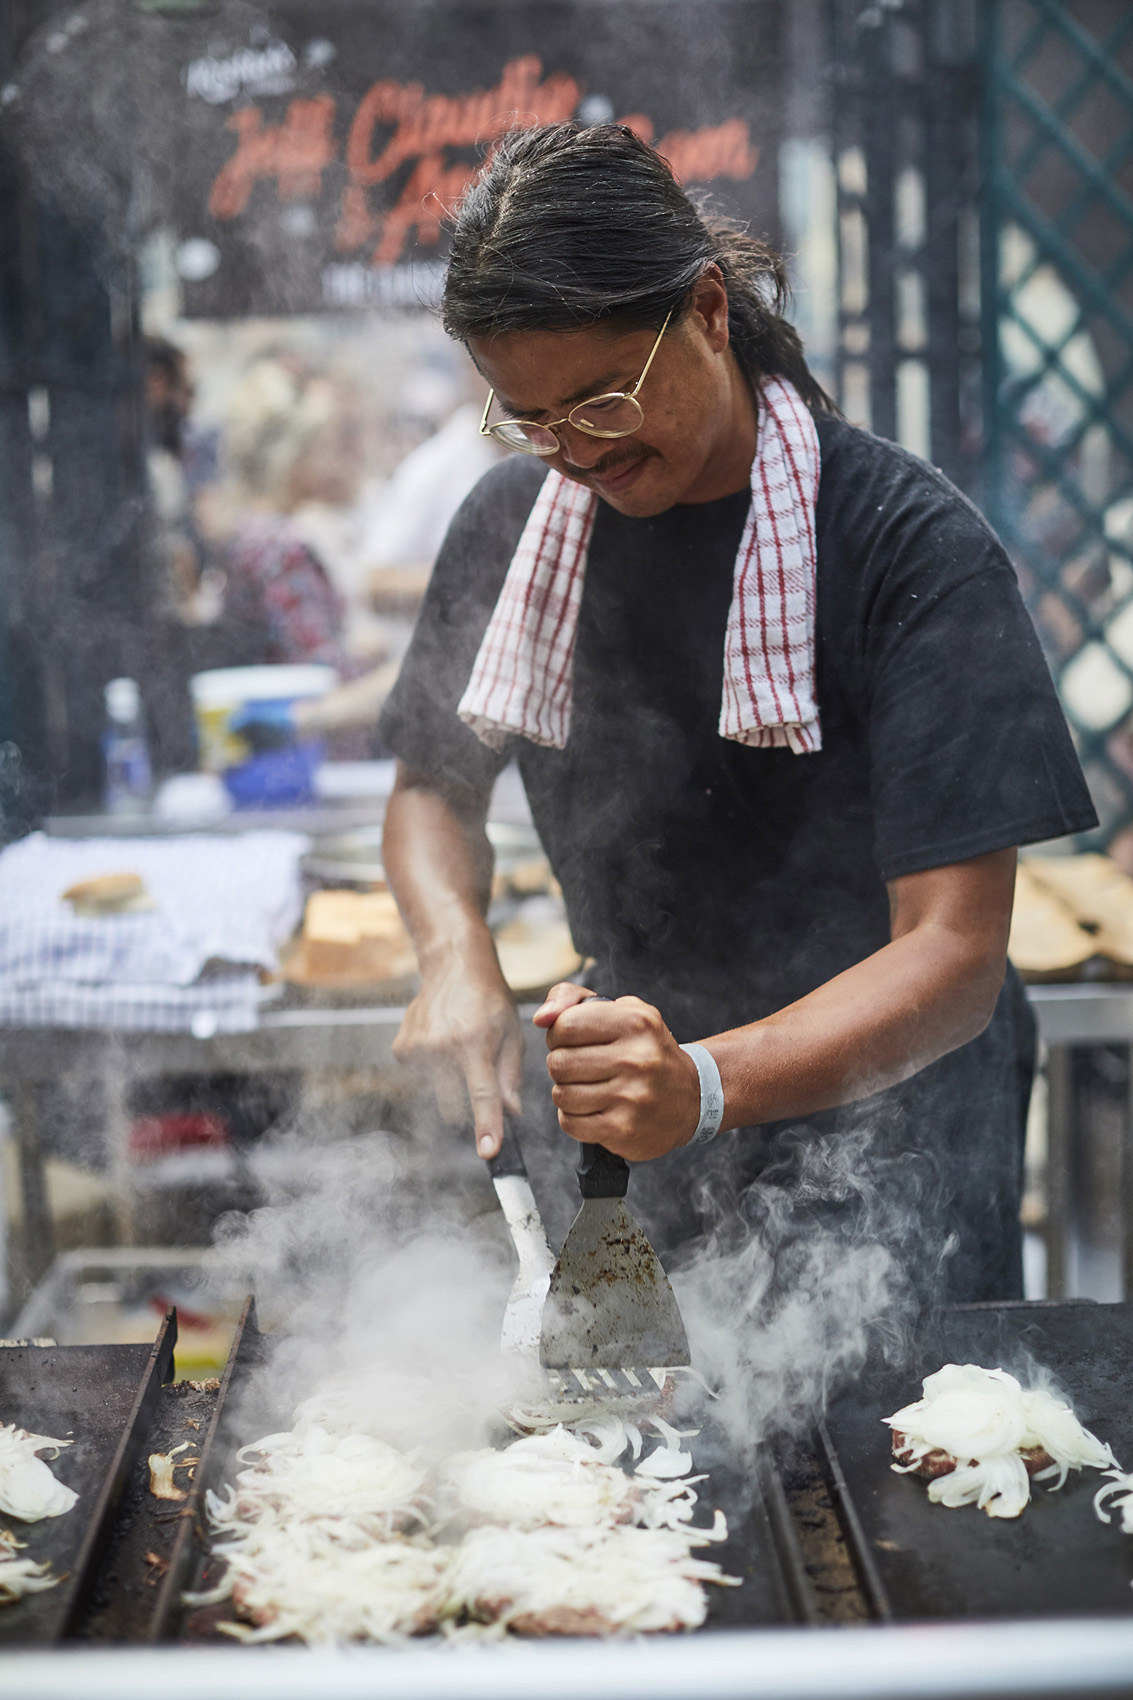 SteveRyan_Photographer_Portraits_People_Reportage_SmashBurger_Meatopia_138